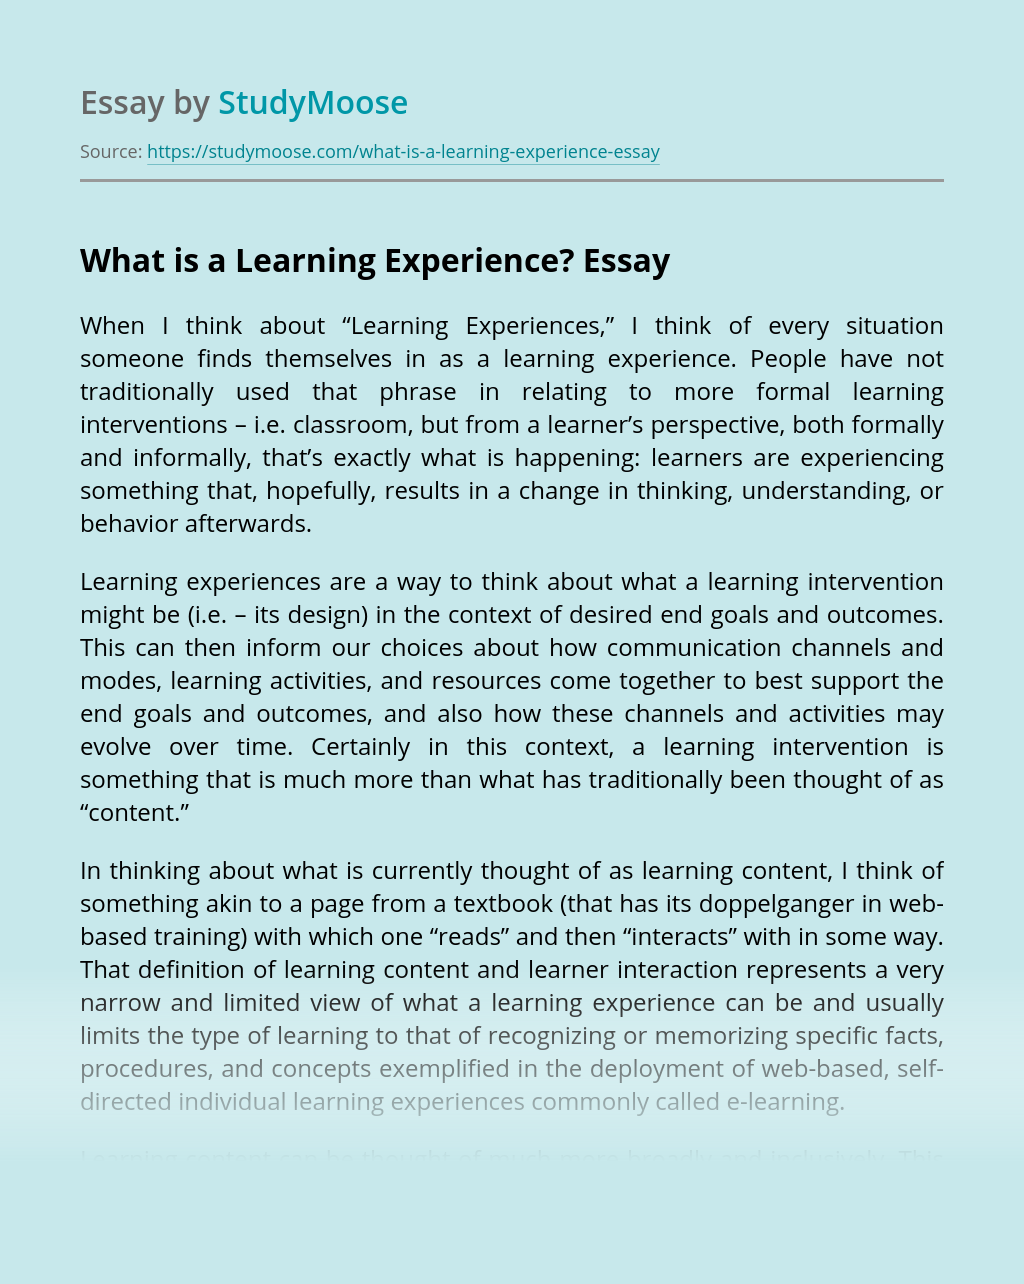 What is a Learning Experience?